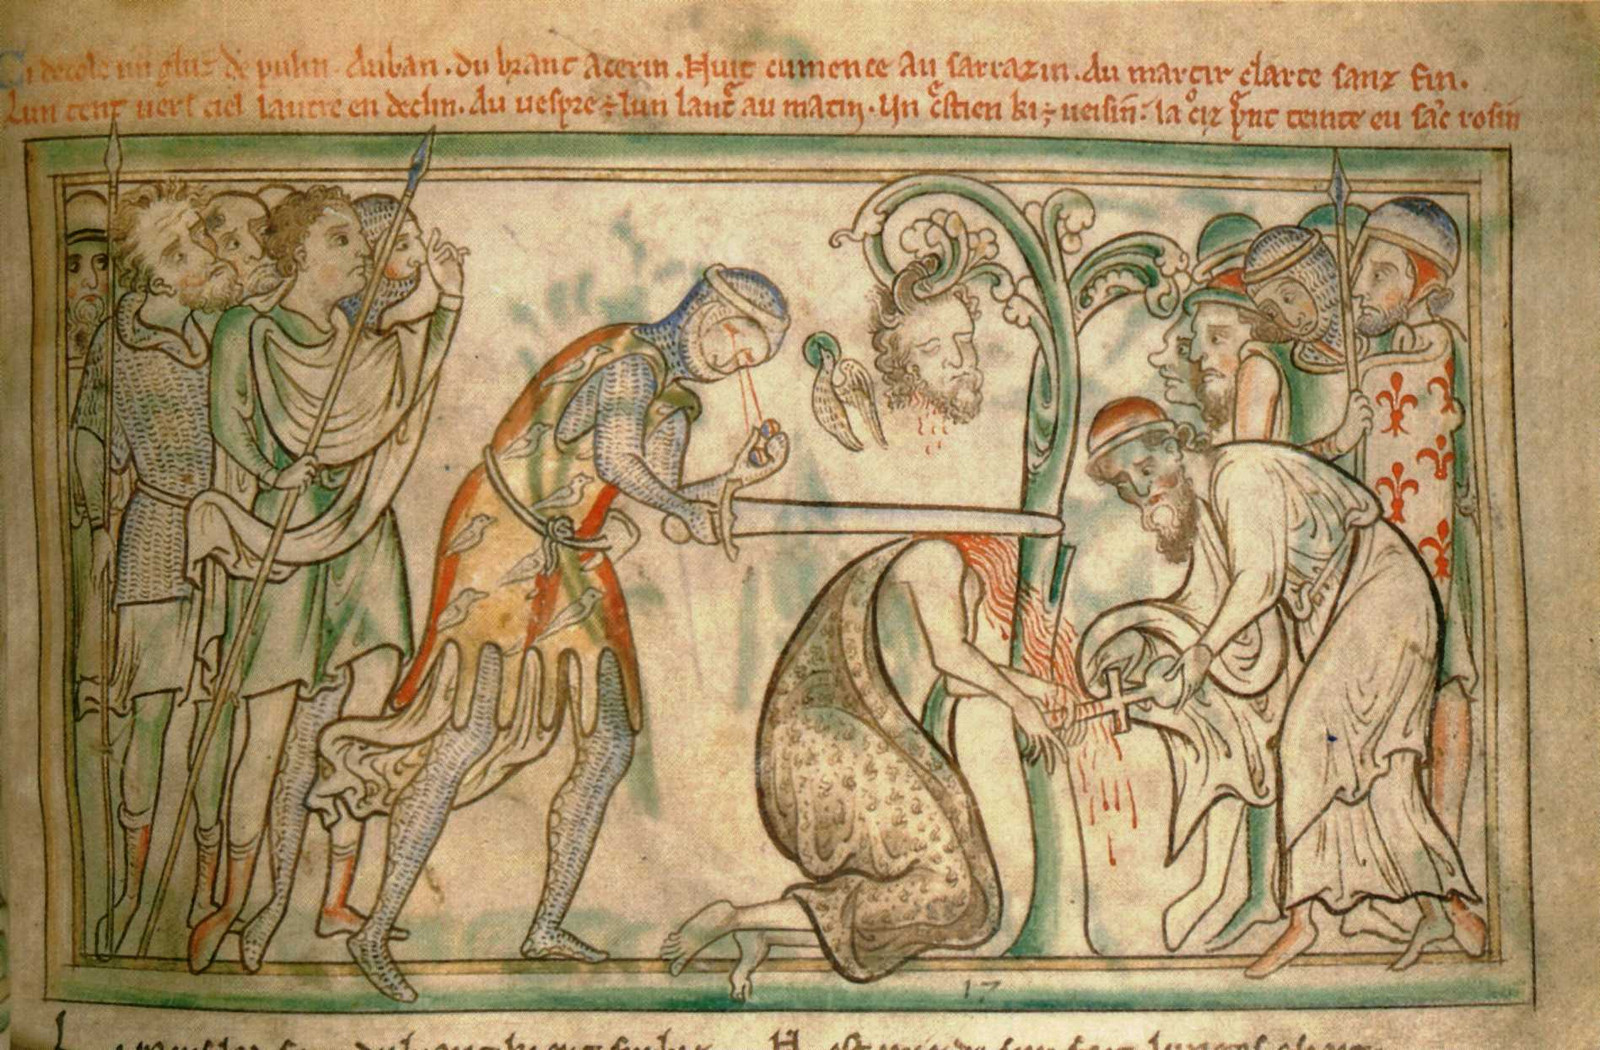 St_valentine_being_martyred